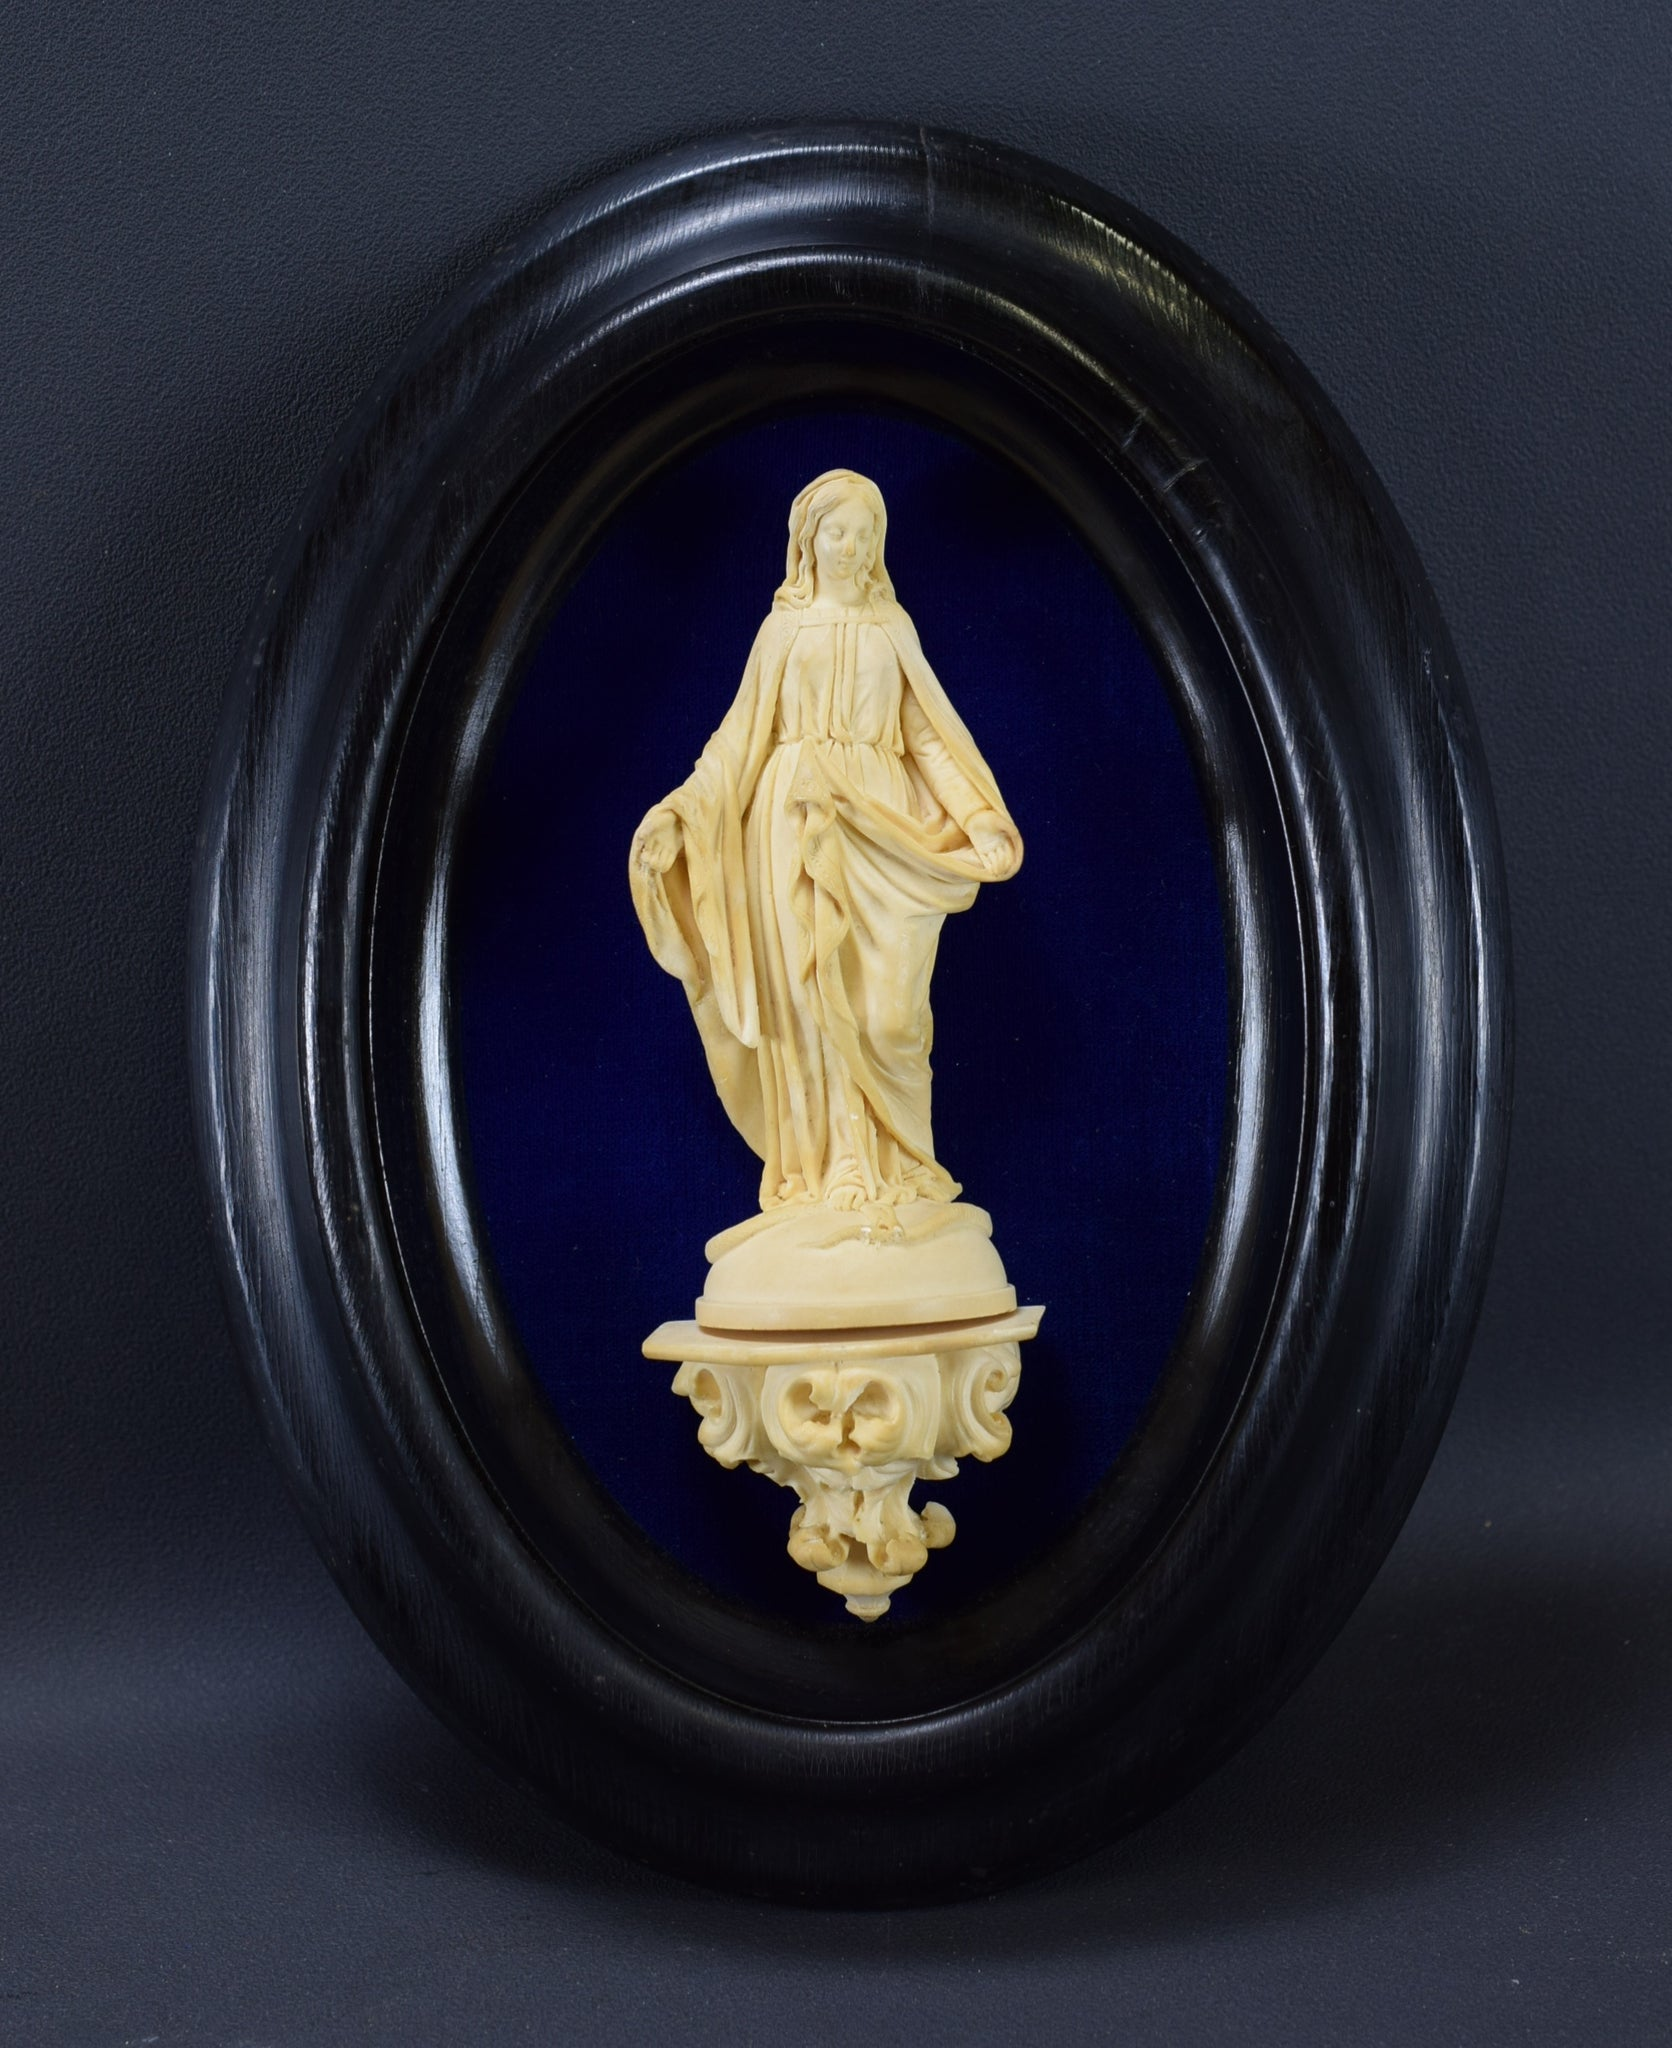 Meerschaum Carved Reliquary Mary Wall Medallion Black Frame